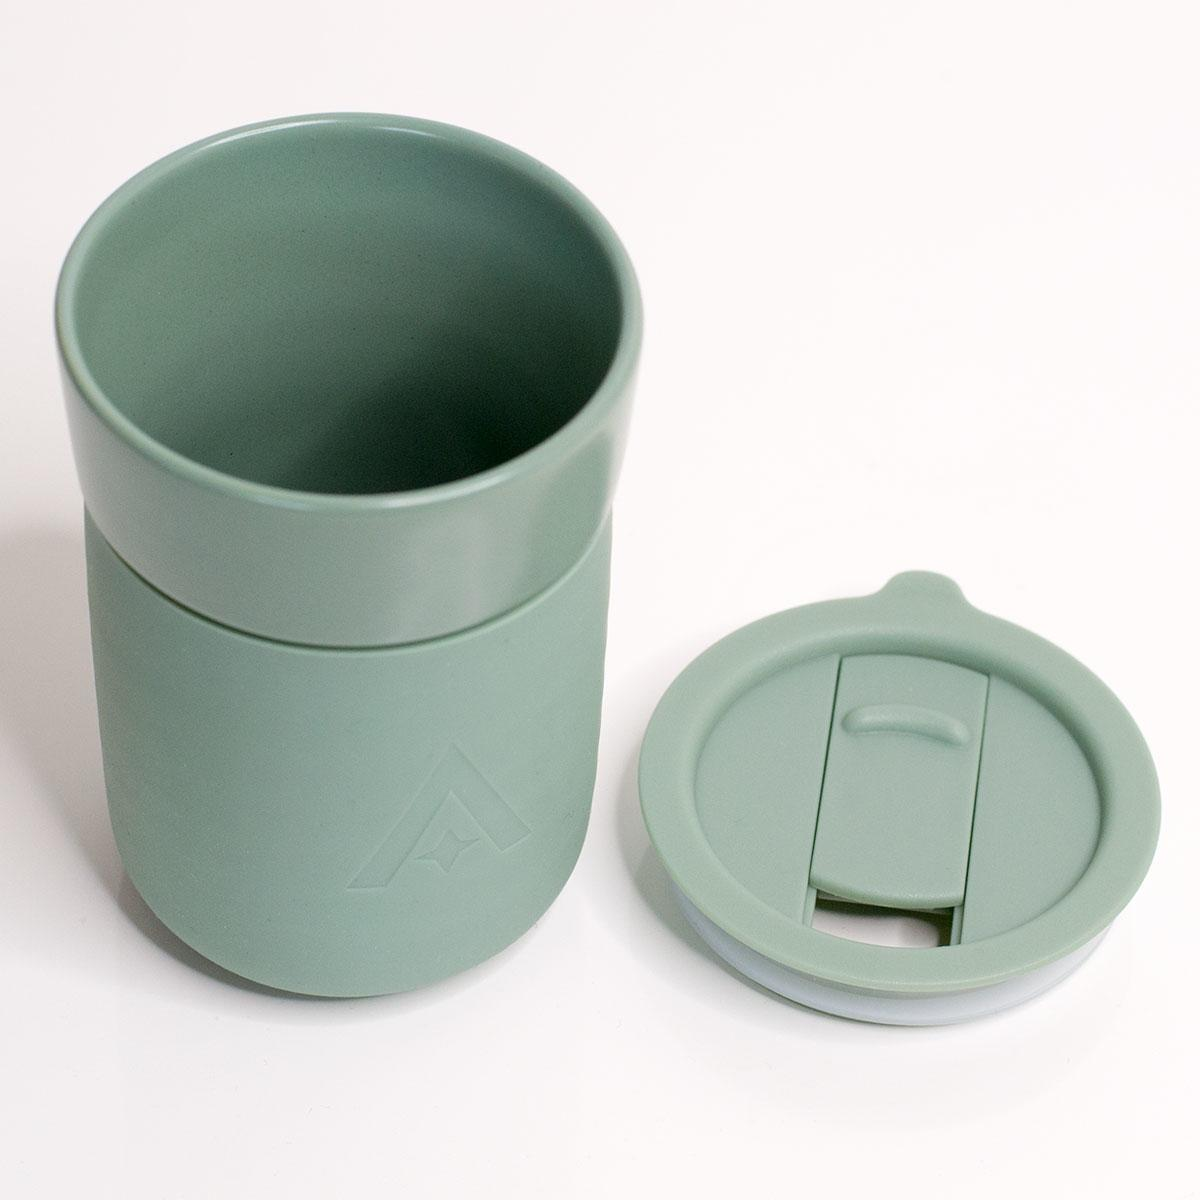 Carry Cup - The Universal Travel Mug by Uberstar (Sage Green)